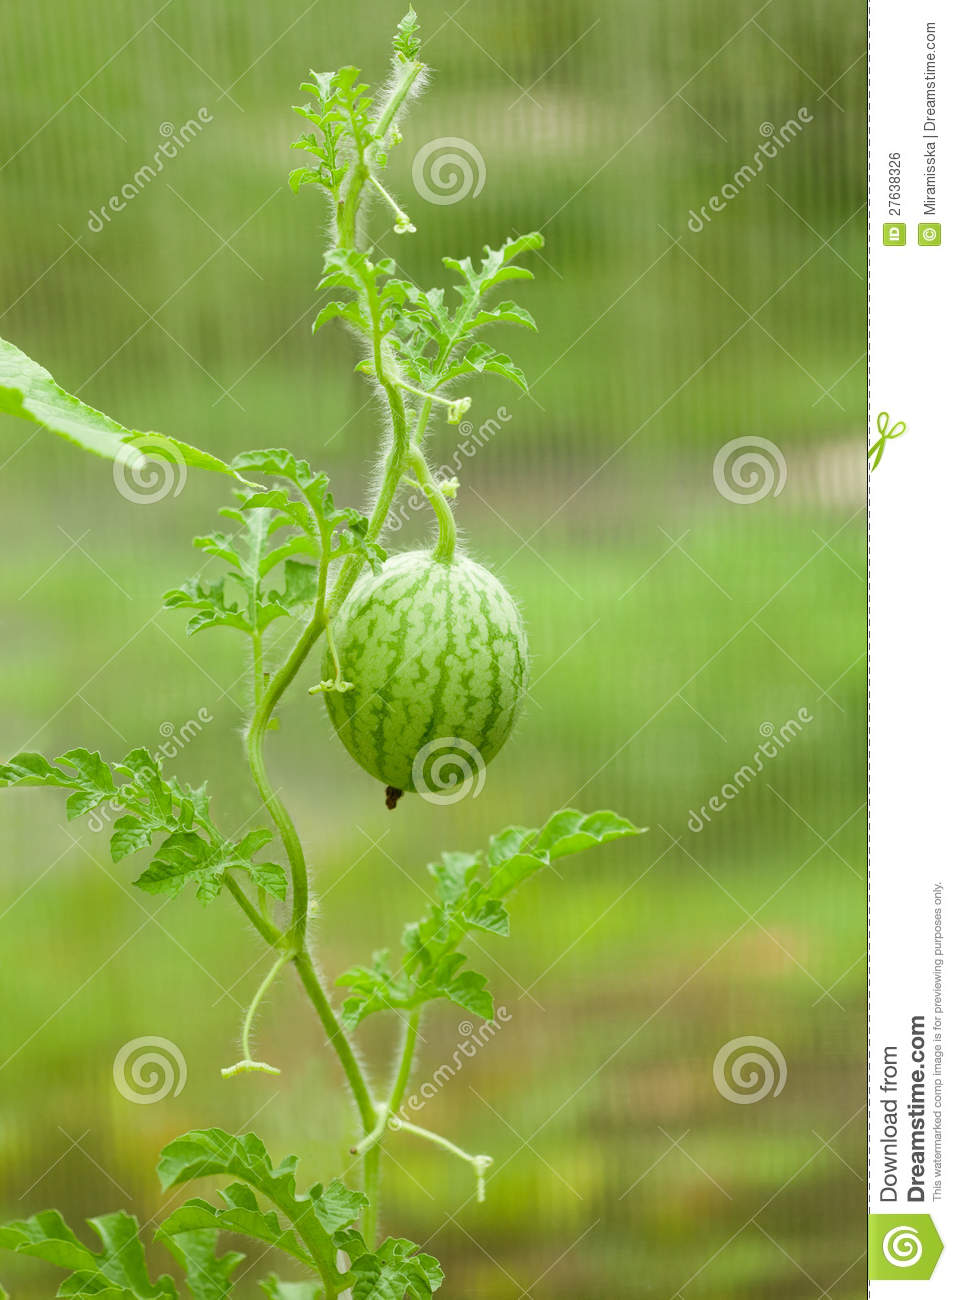 Small Watermelon Royalty Free Stock Image - Image: 27638326